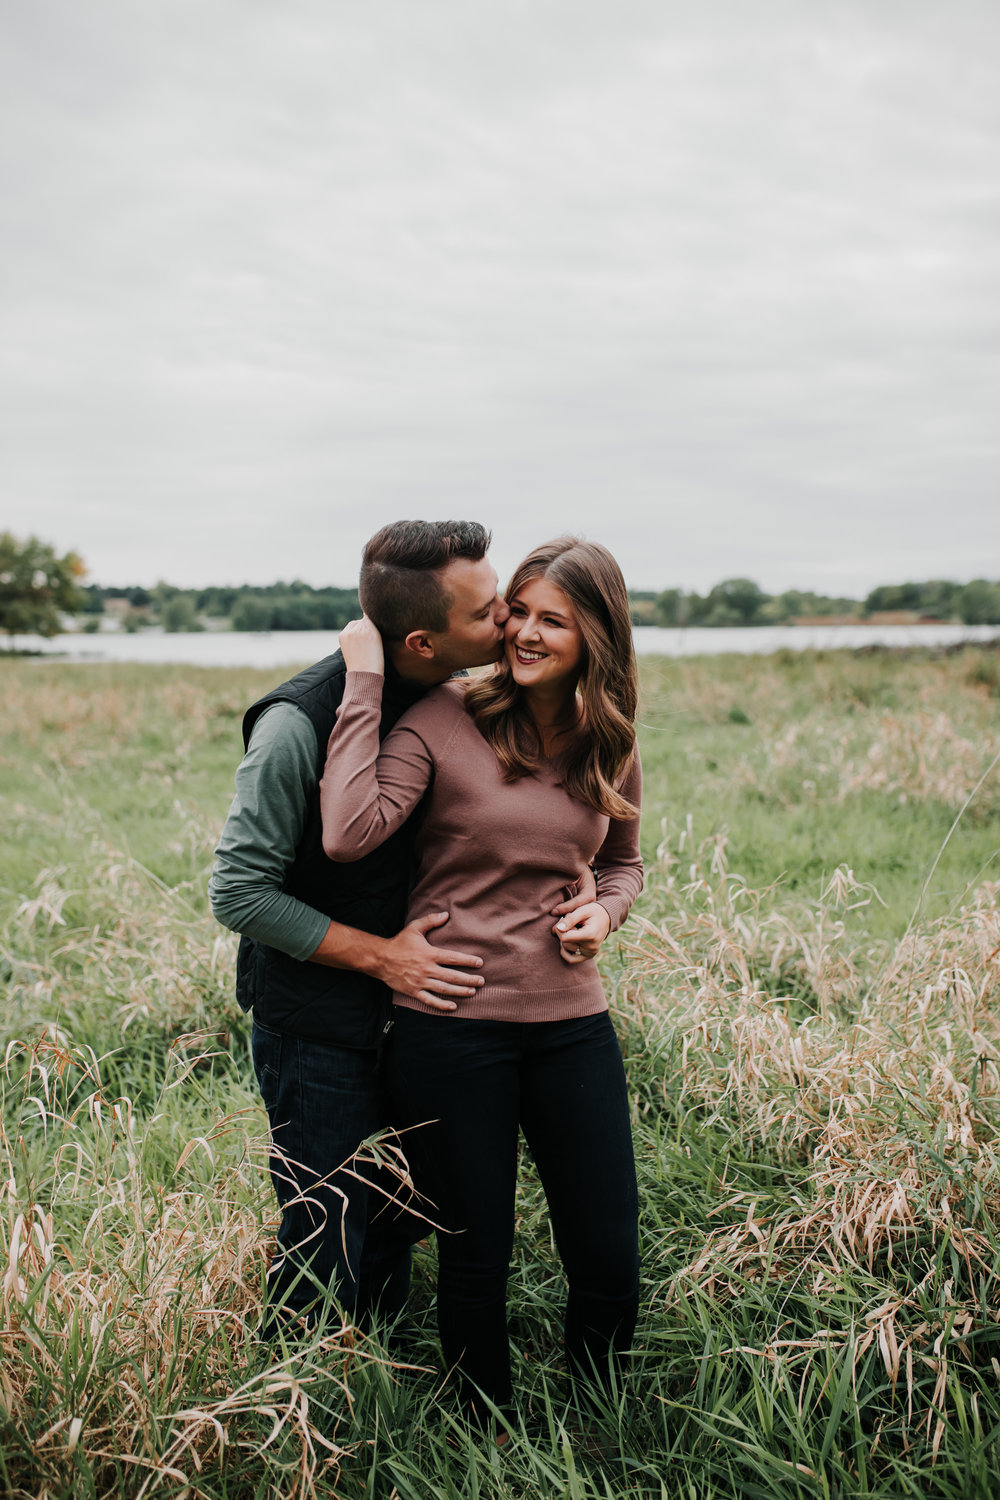 Paige & Nick - Engaged - Nathaniel Jensen Photography - Omaha Nebraska Wedding Photograper - Omaha Nebraska Engagement Session - Chalco Hills Engagement Session-89.jpg